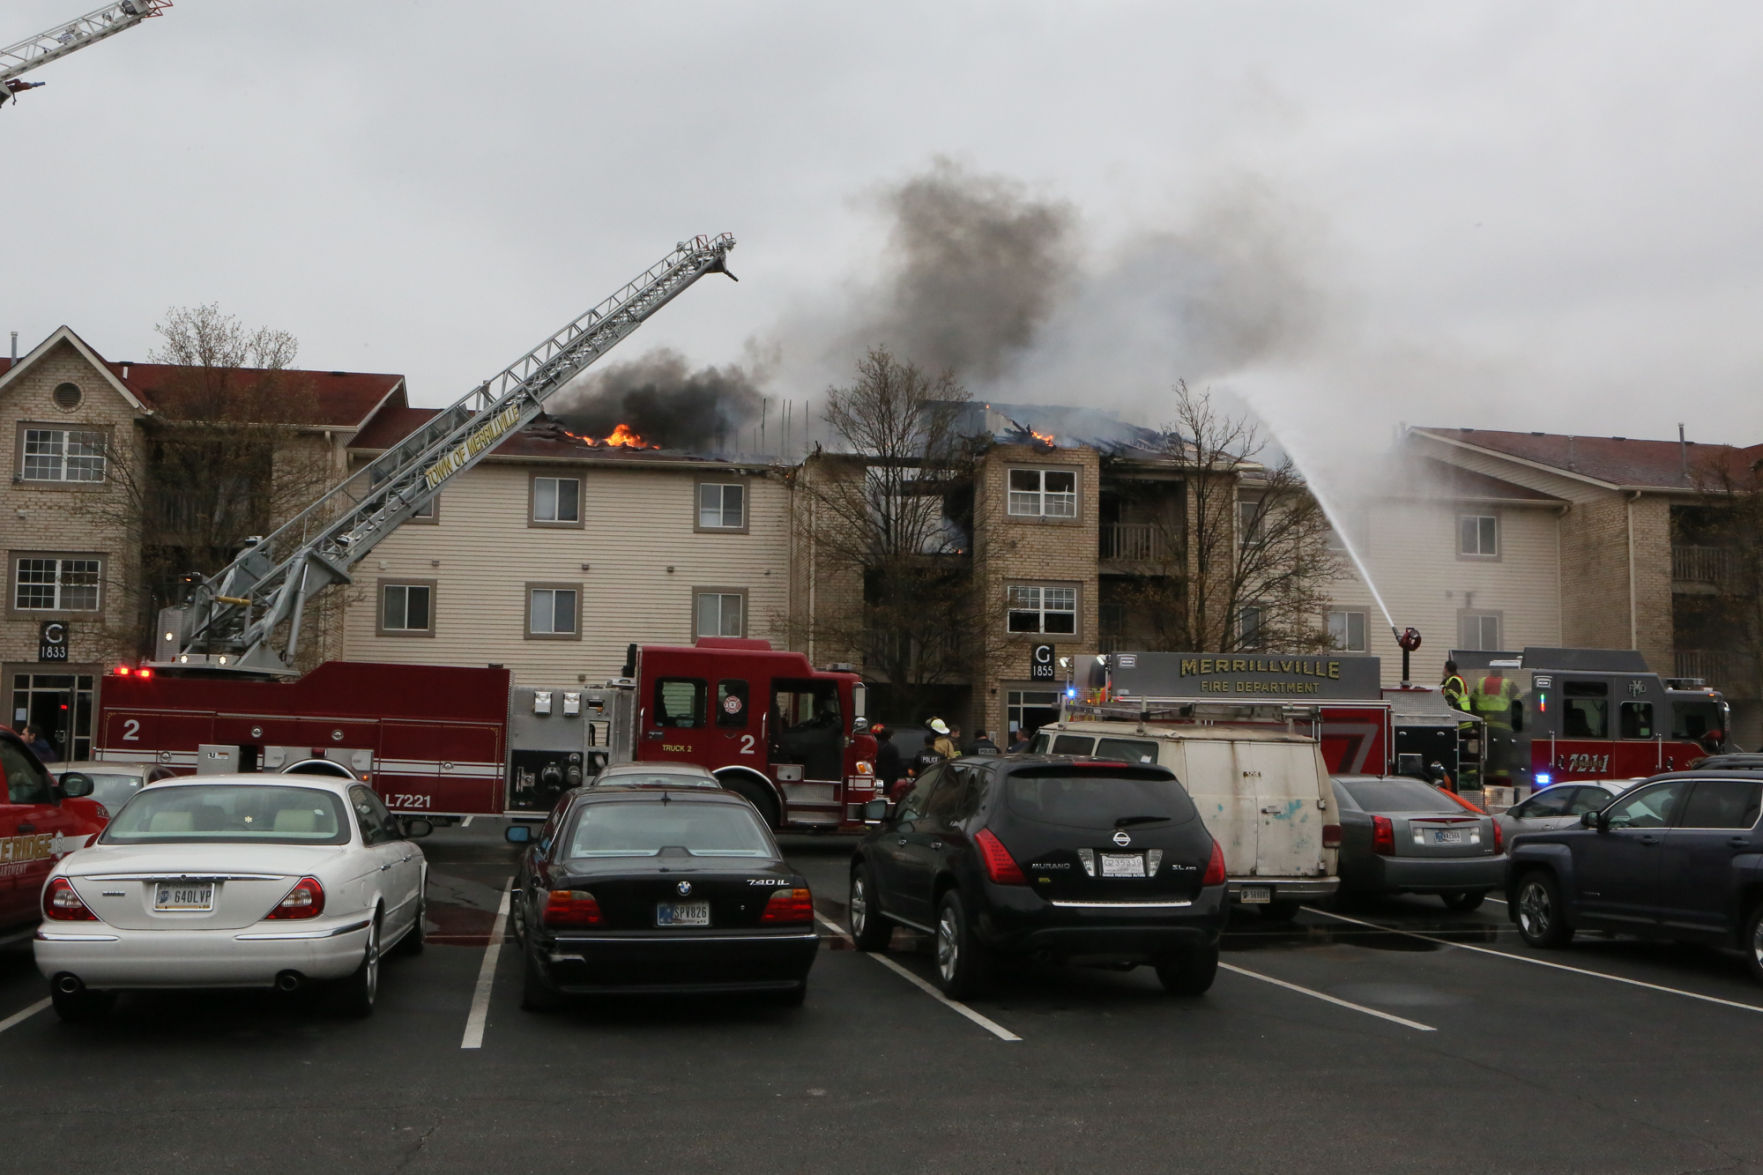 Firefighters Work To Extinguish A Blaze At The Lakes Apartment Complex.